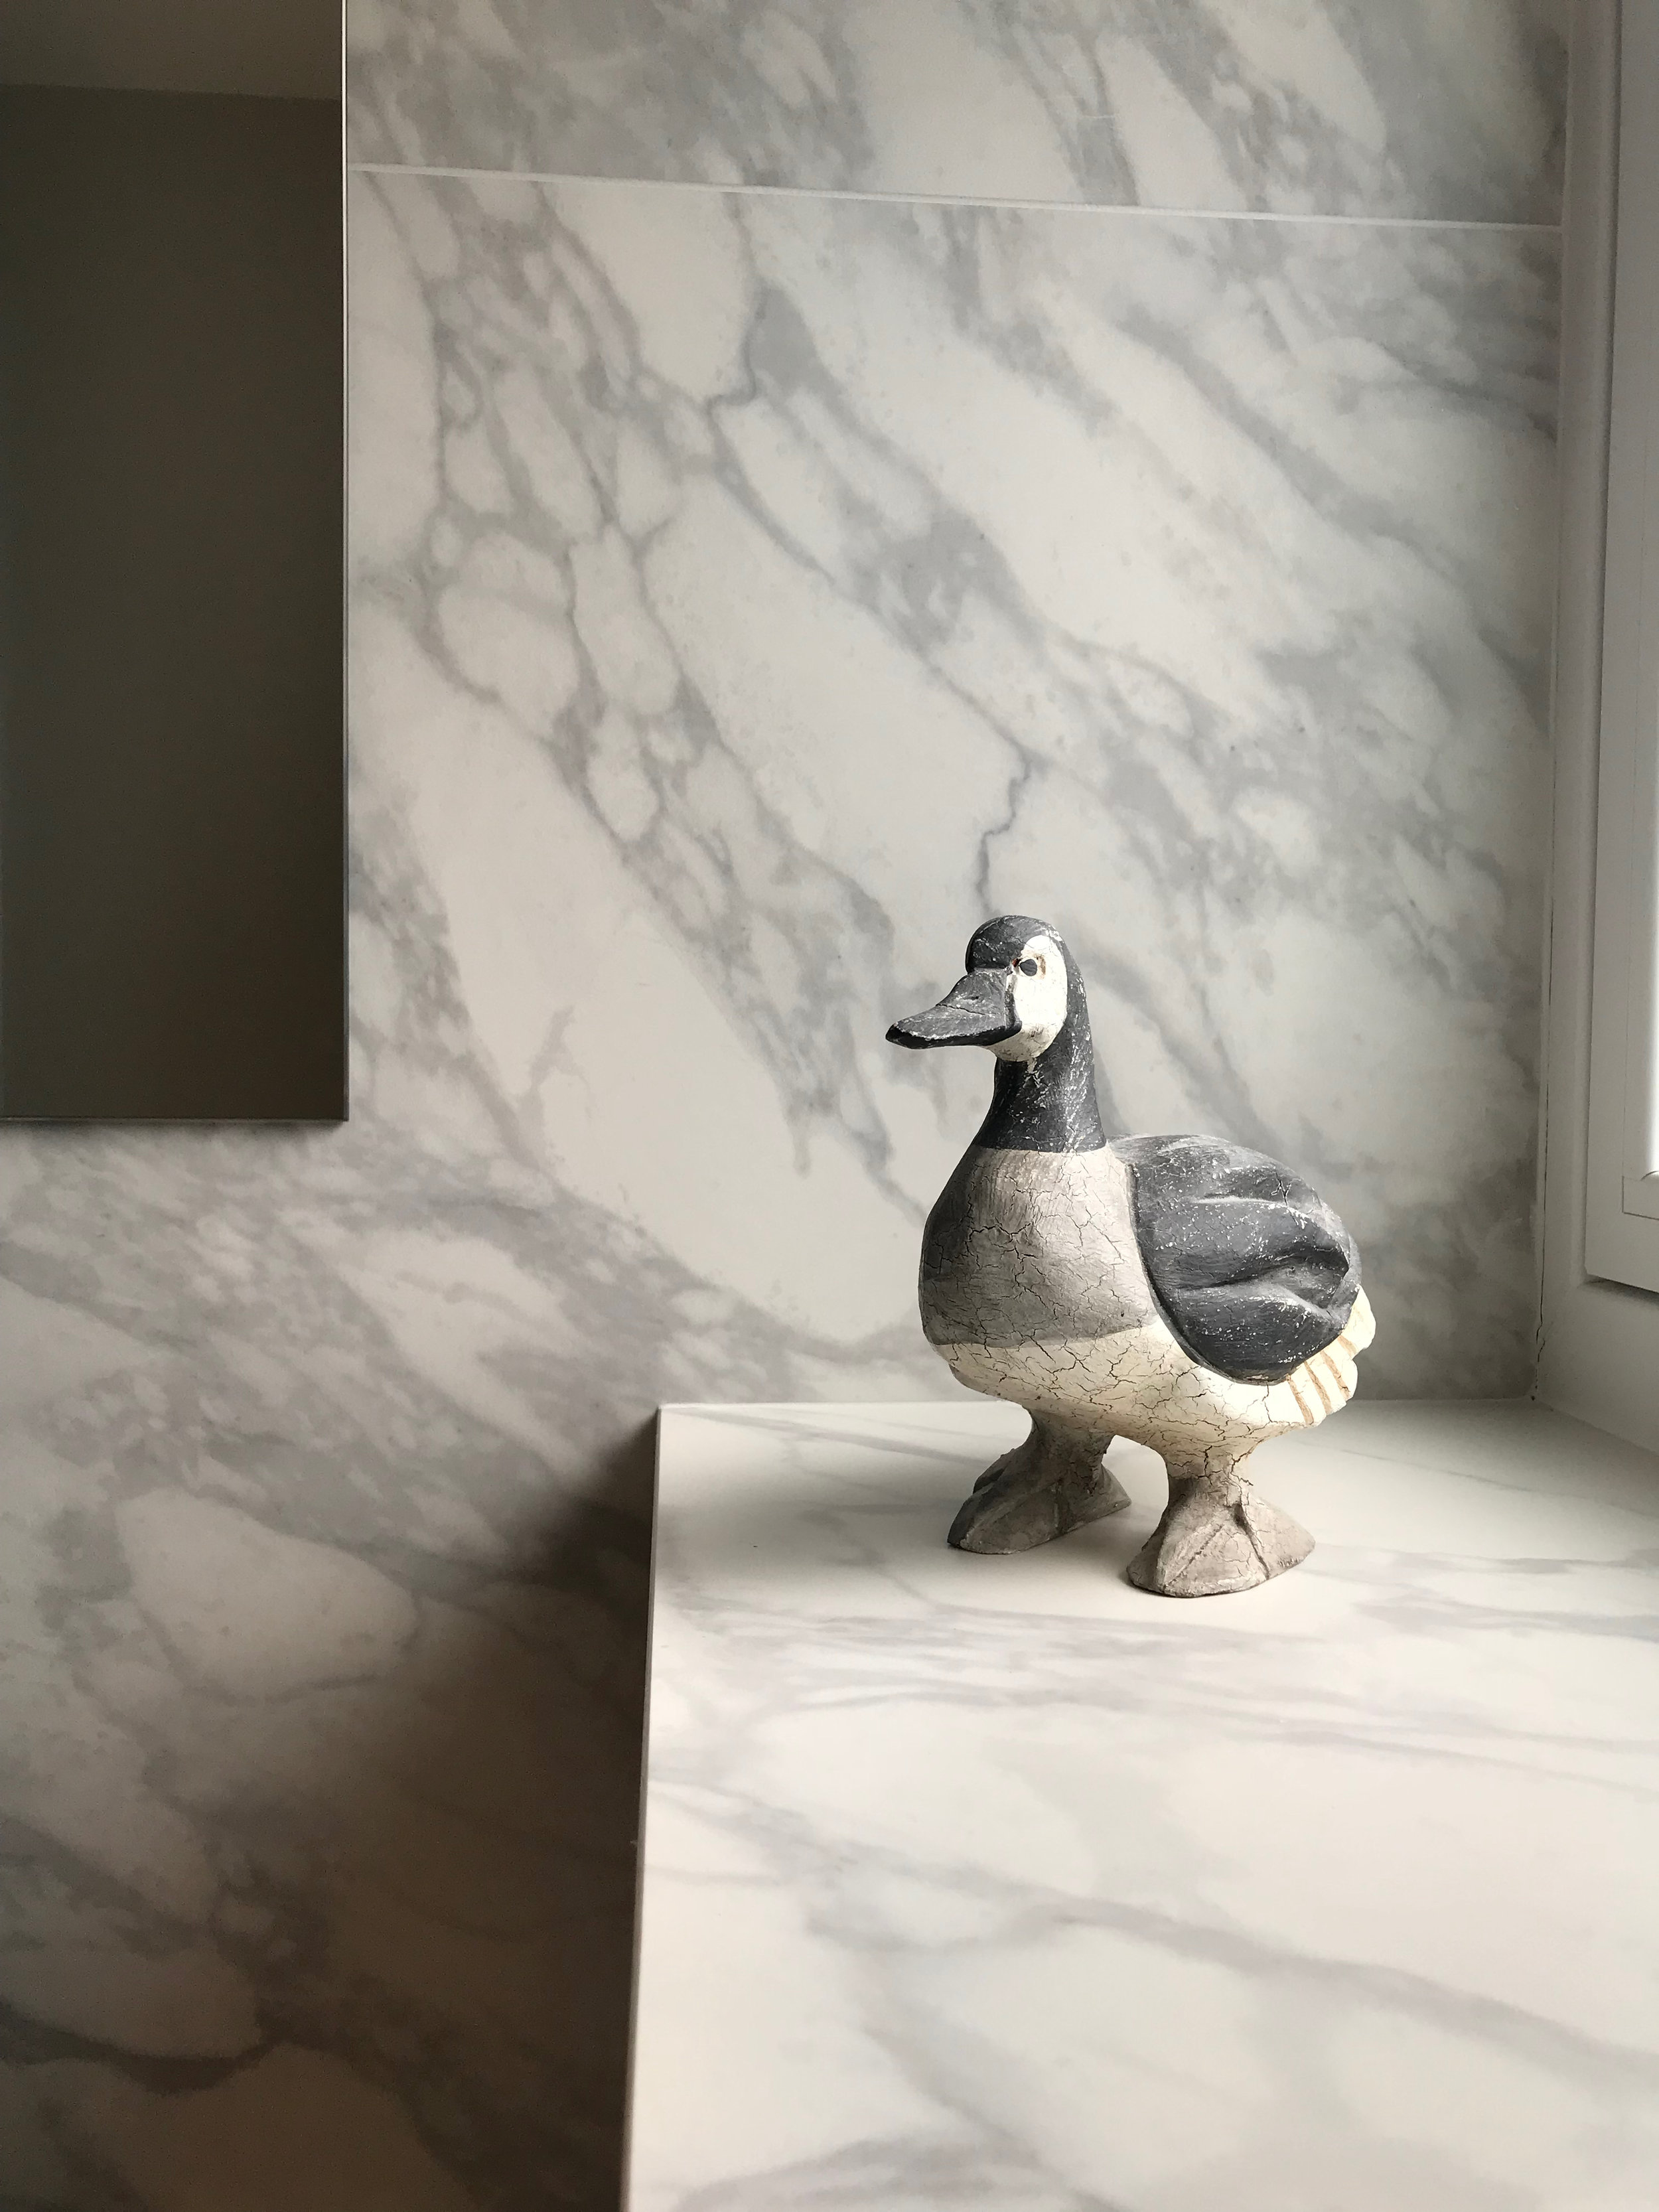 Porcelain tile fabricated to make a window sill